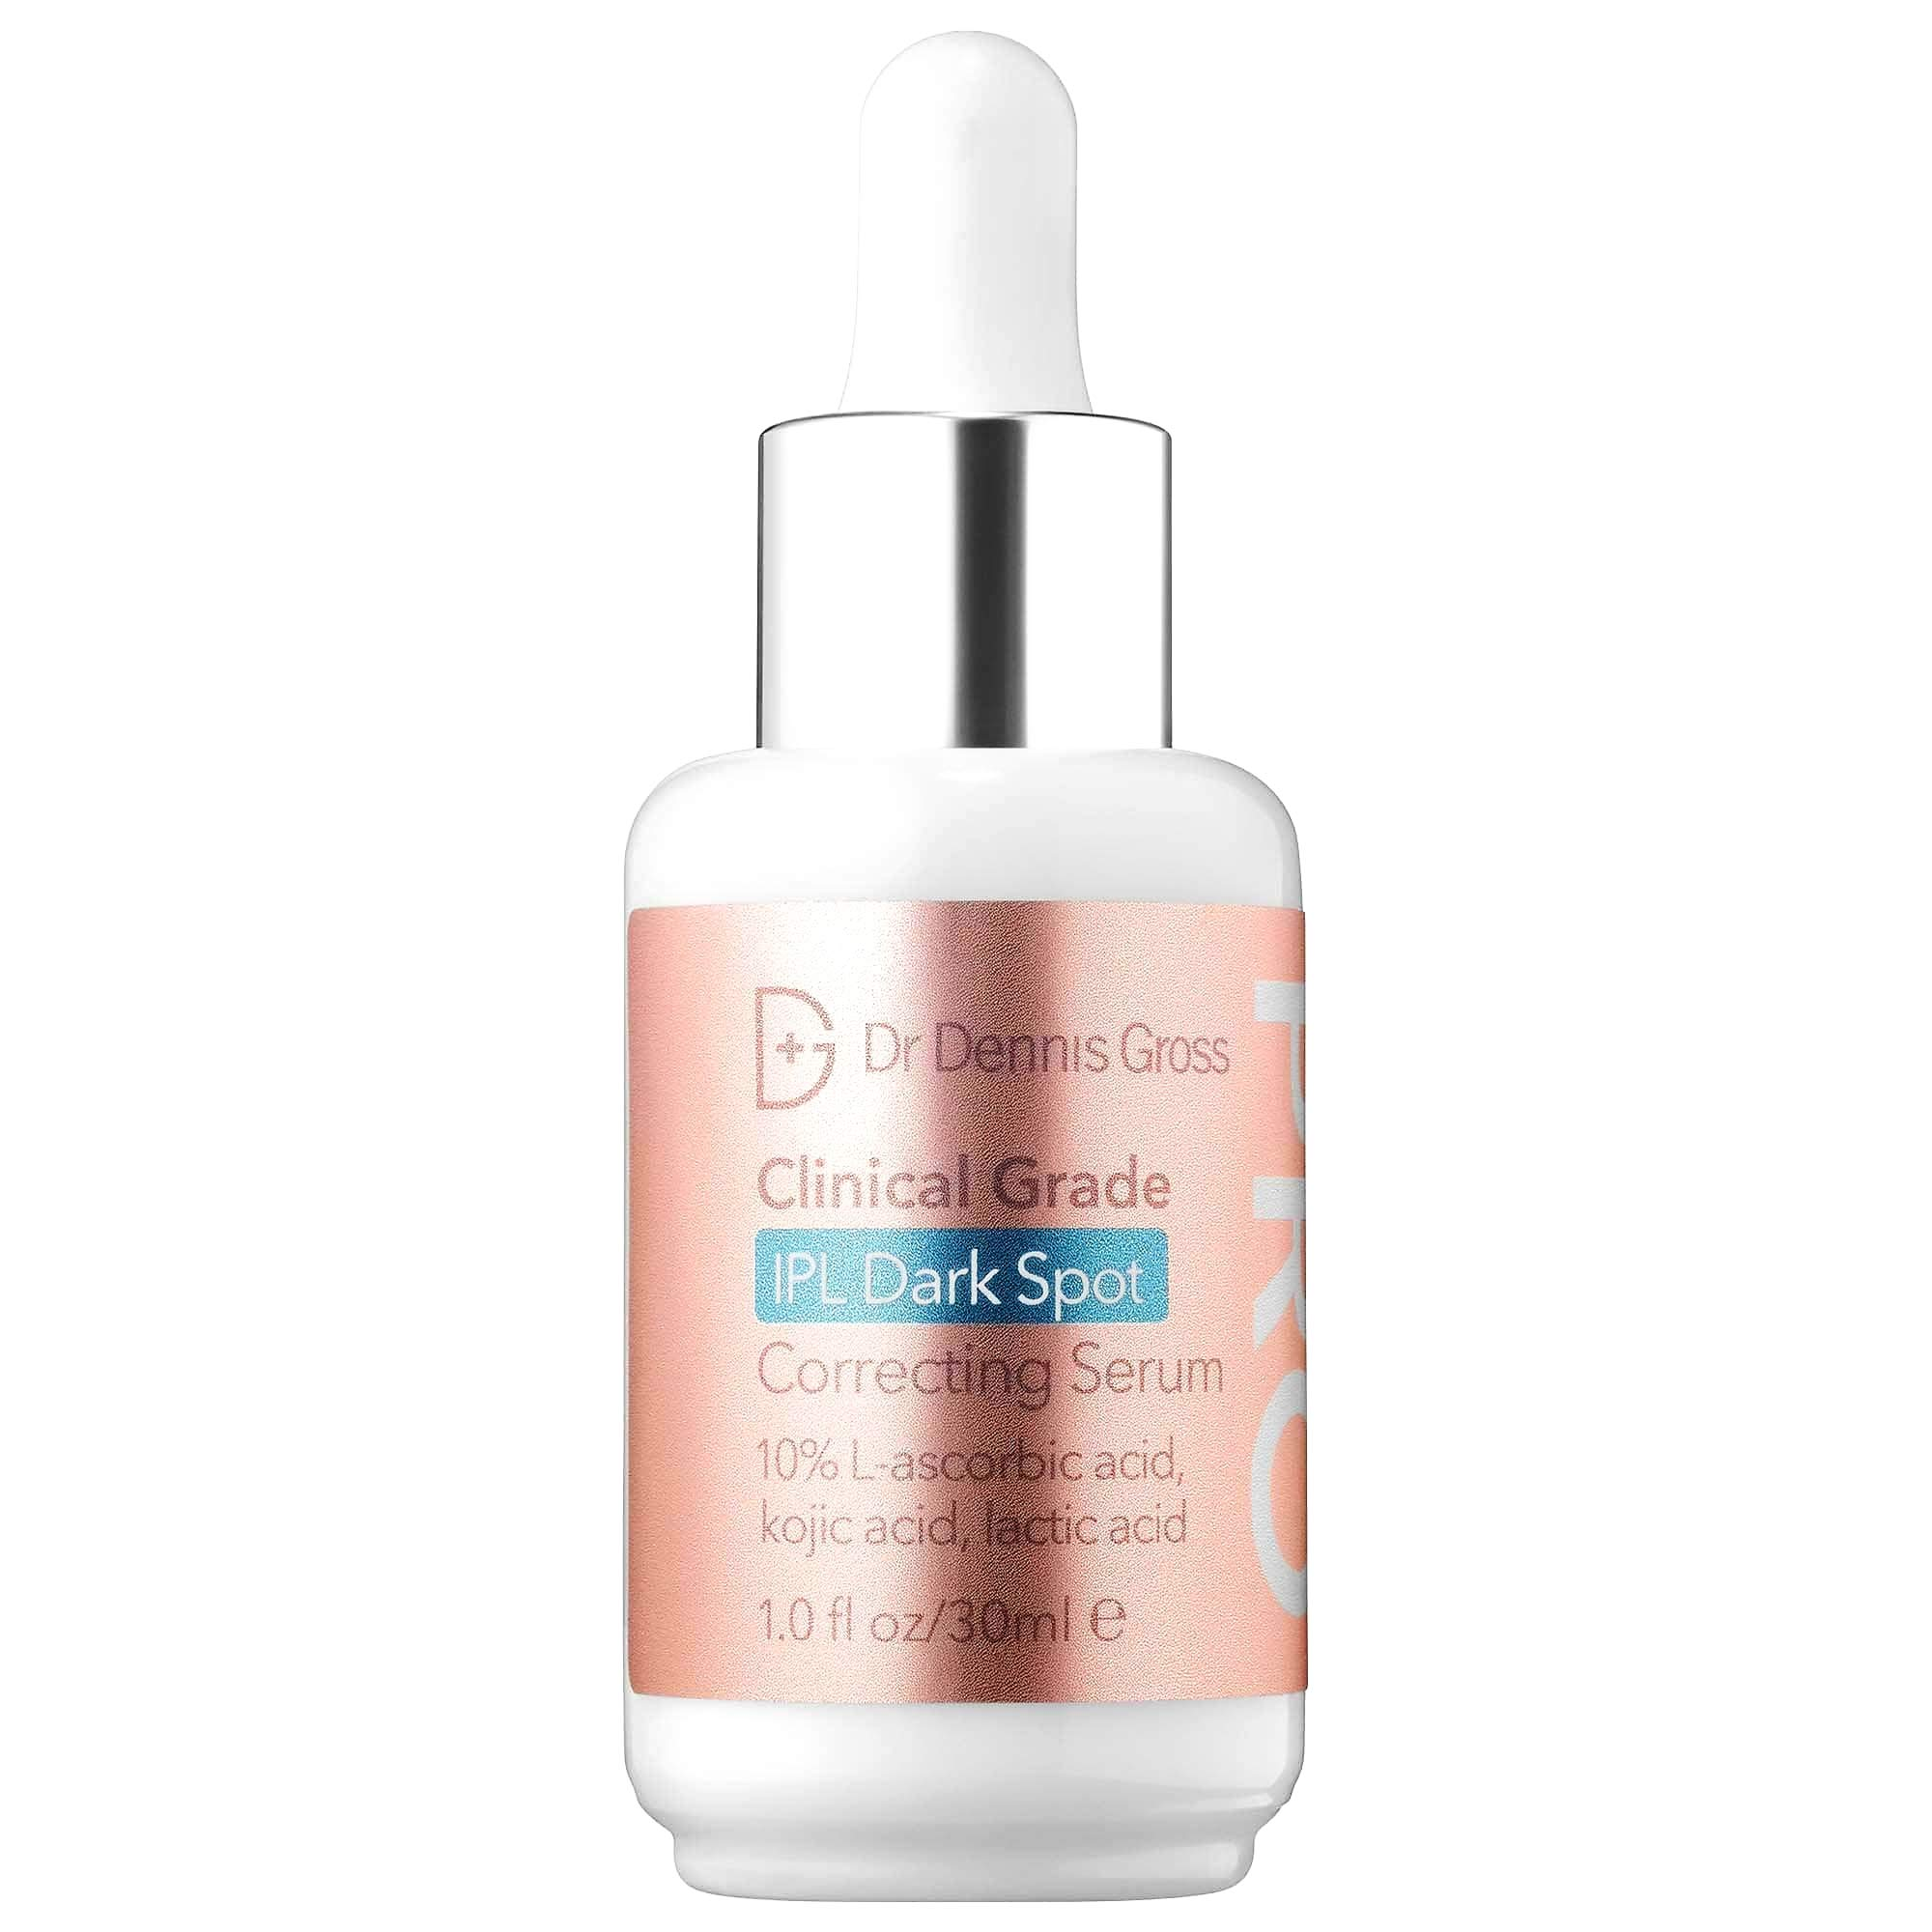 Dr. Dennis Gross Skincare - Clinical Grade IPL Dark Spot Correcting Serum